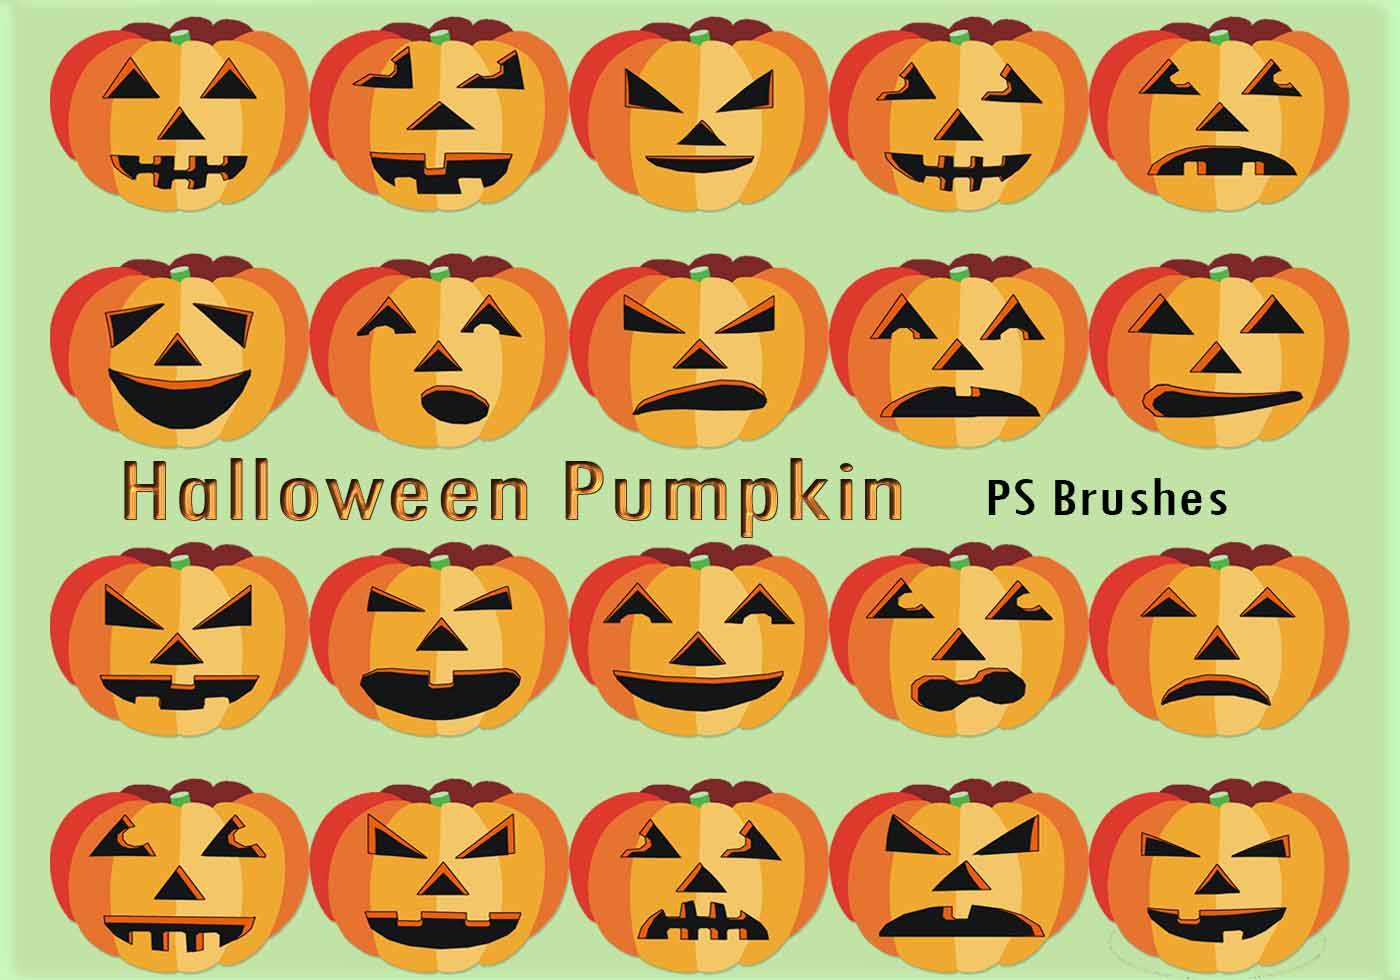 20 Halloween Pumpkin PS Brushes abr.Vol.9 - Free Photoshop Brushes ...